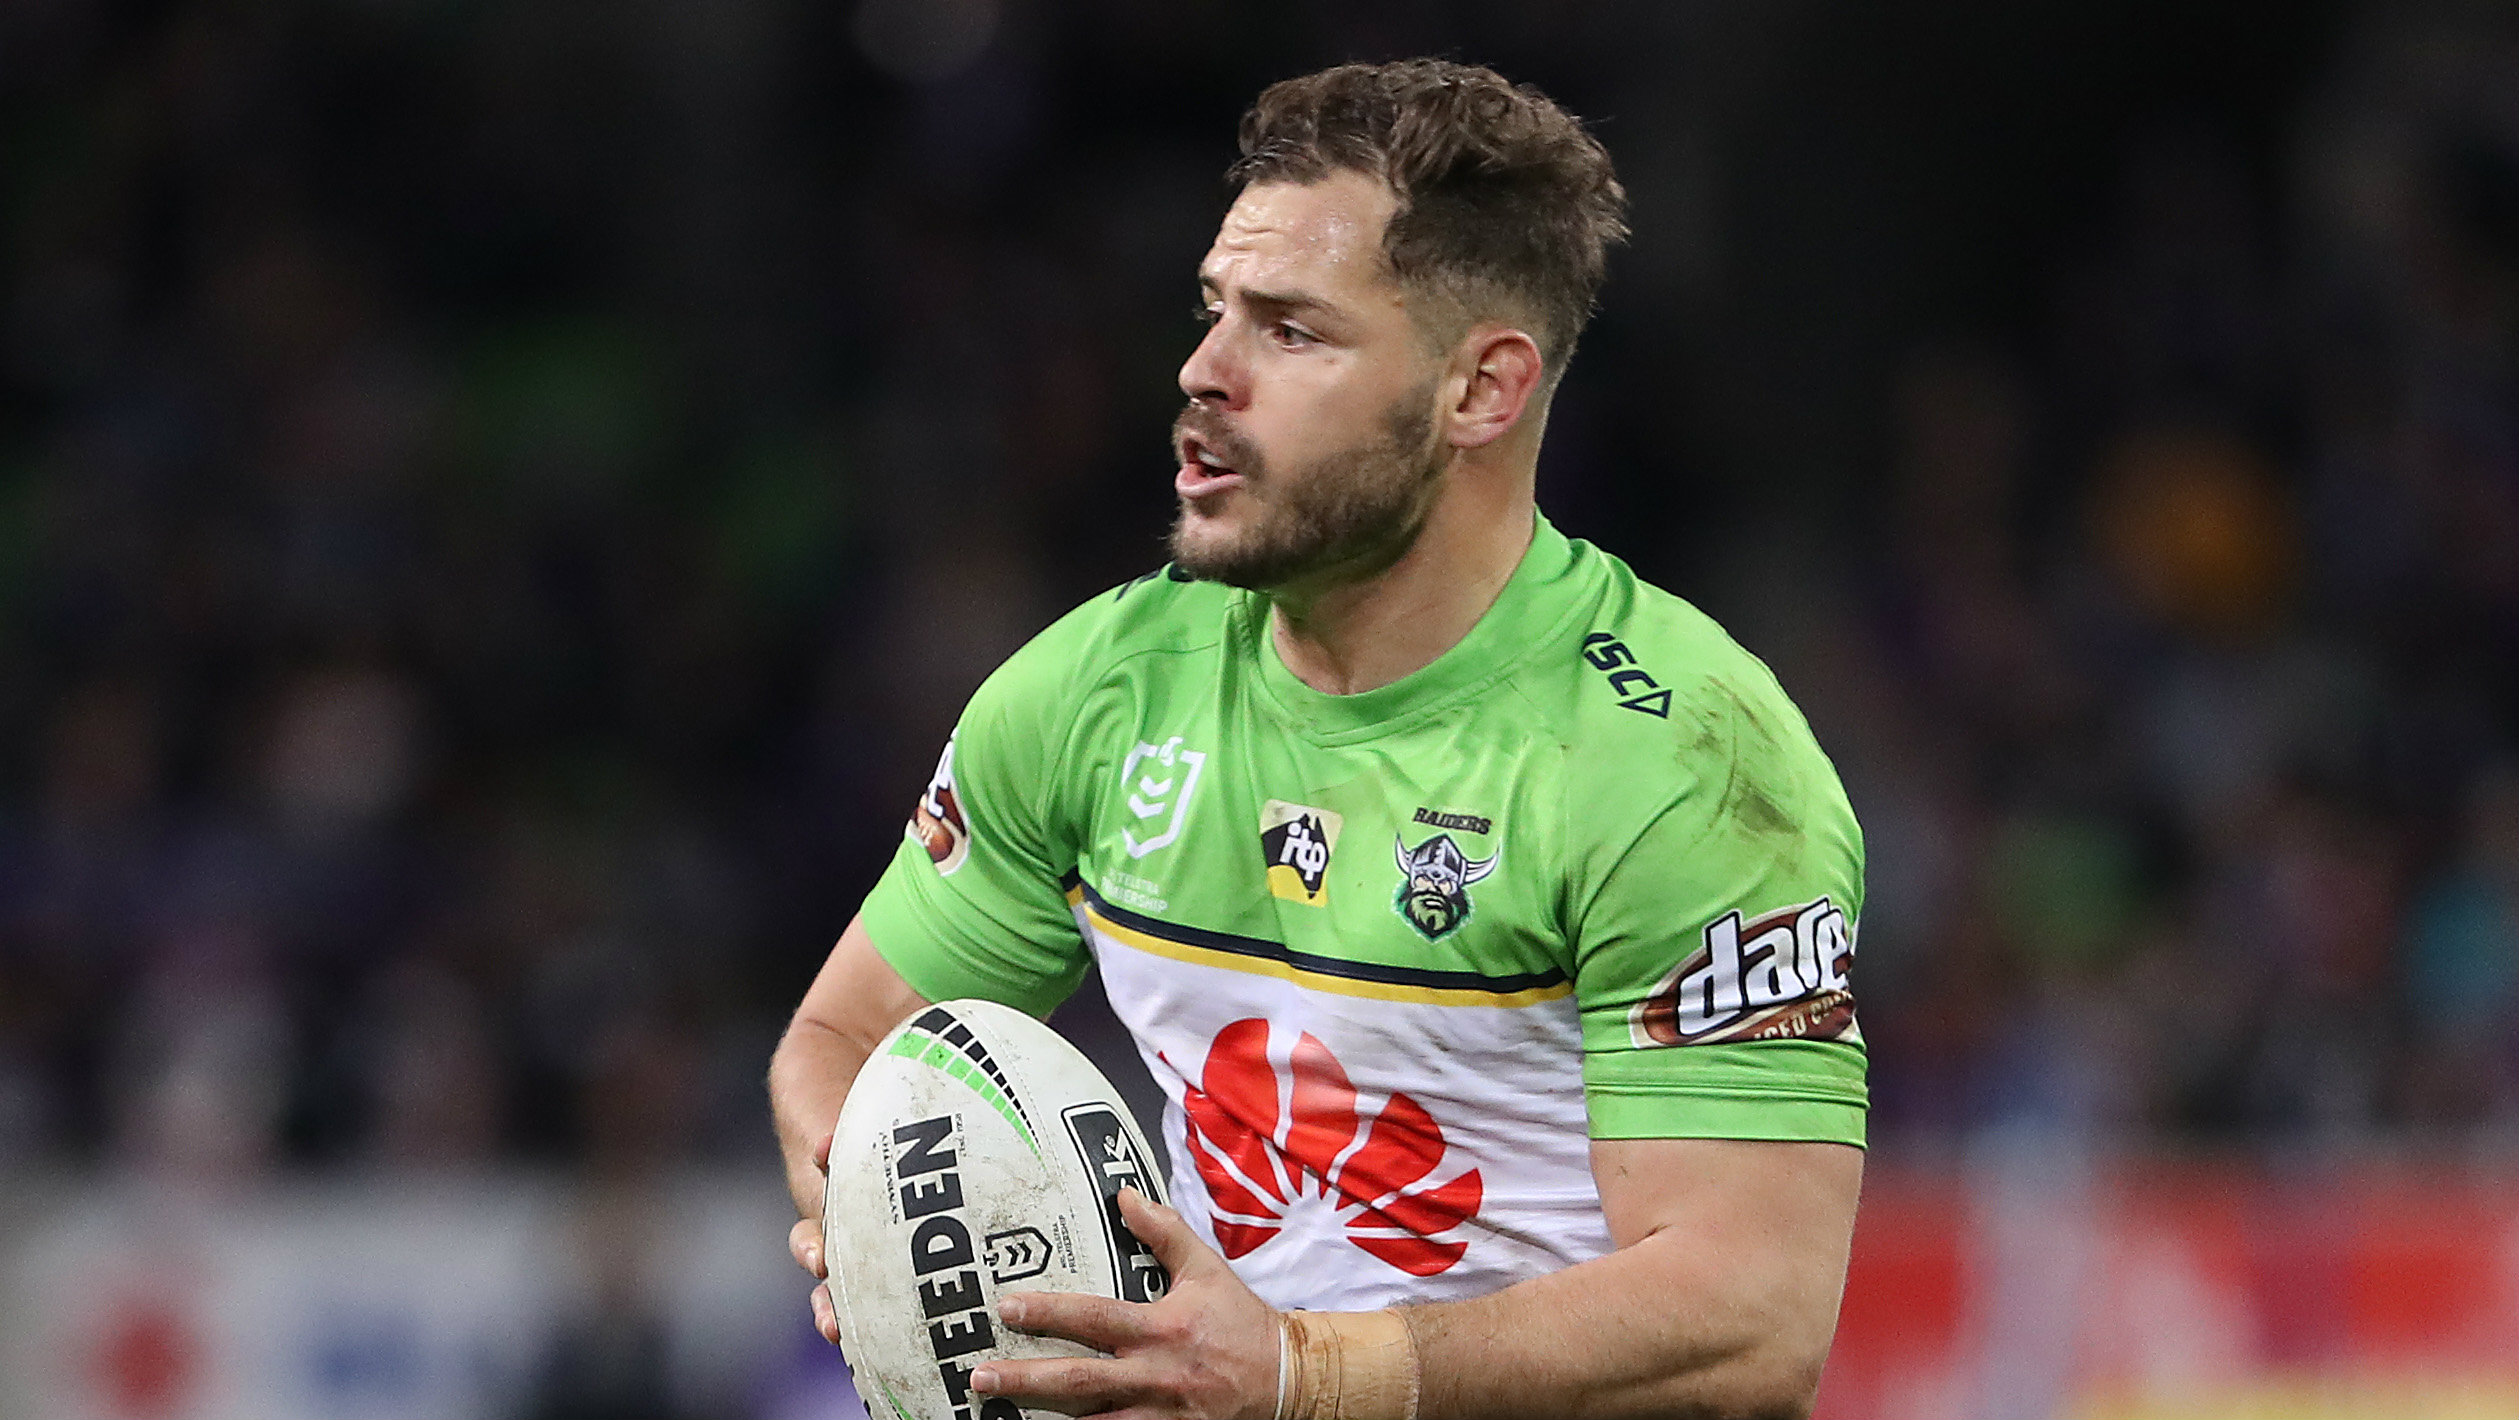 Brisbane Broncos should sign Aidan Sezer 'tomorrow', says Andrew Johns